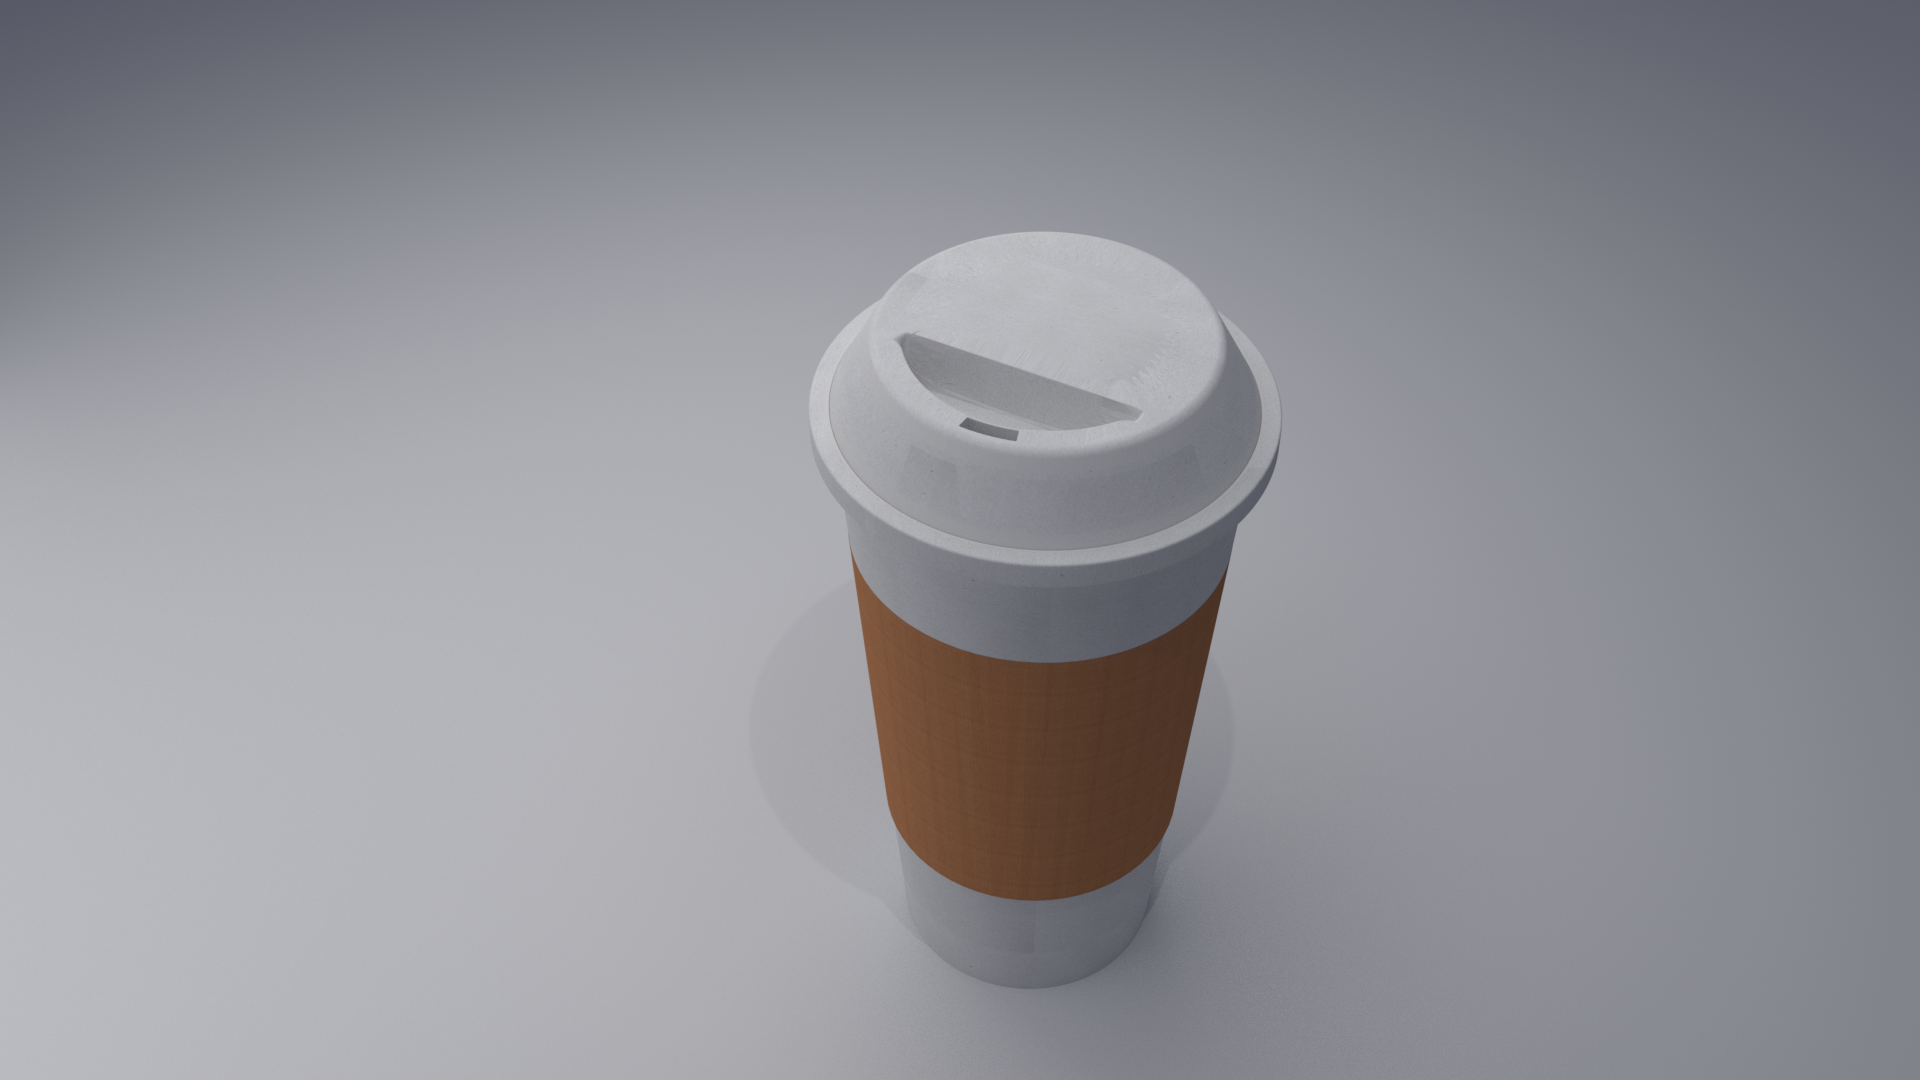 Paper Cup Image 1